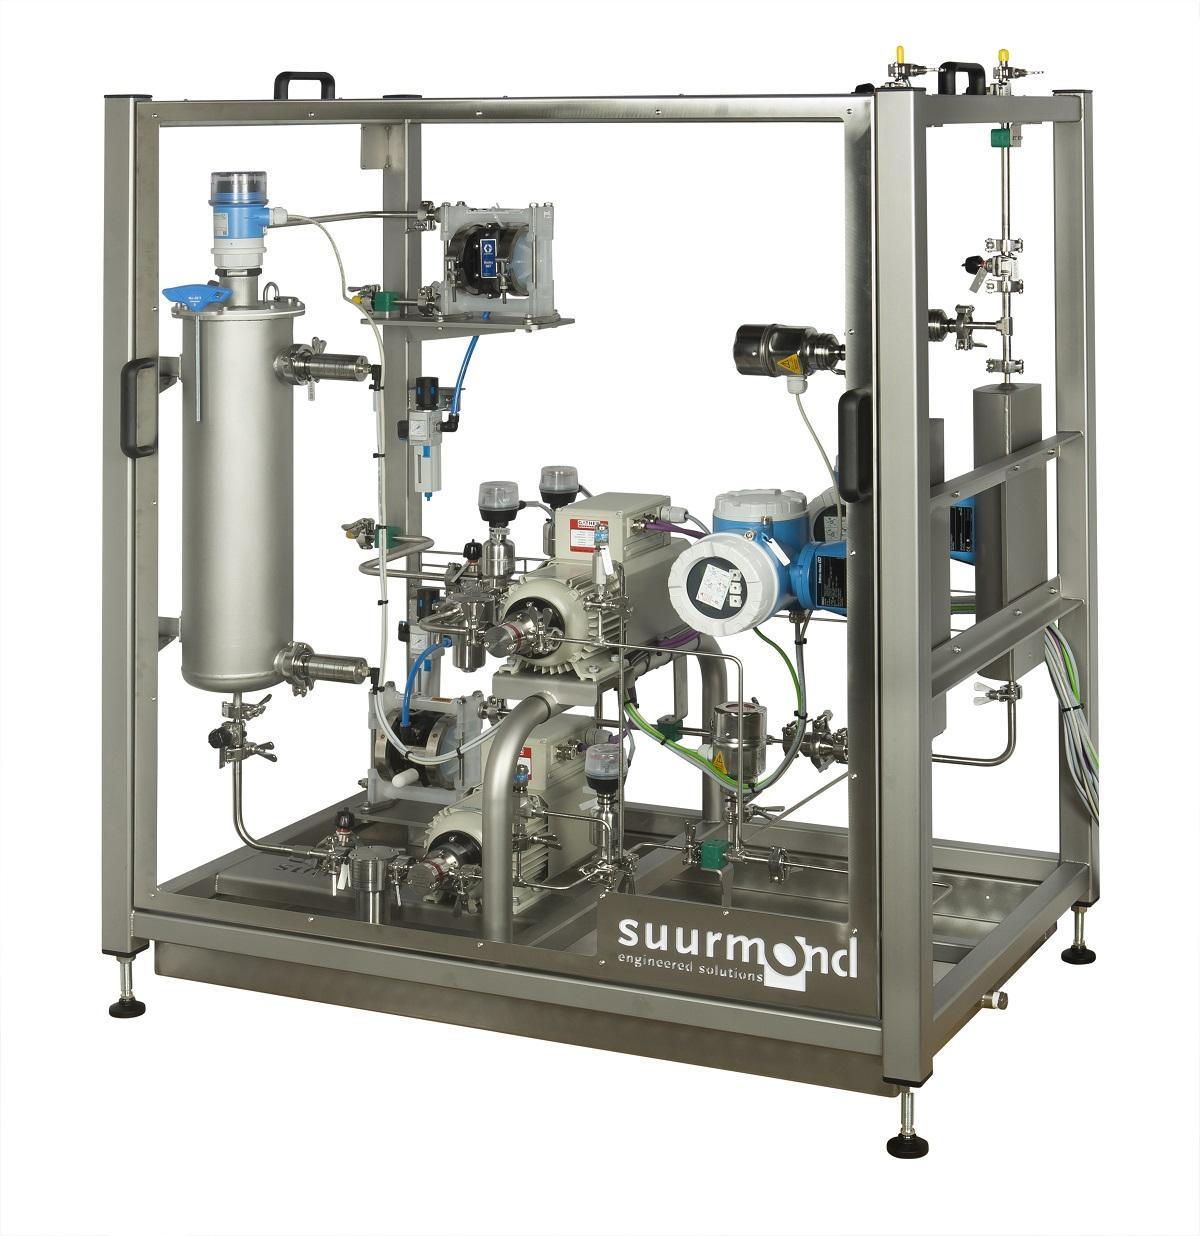 suurDOS® unit for dosing and mixing two component adhesive with dosing and membrane pumps, flow meter and static mixer for guaranteed quality